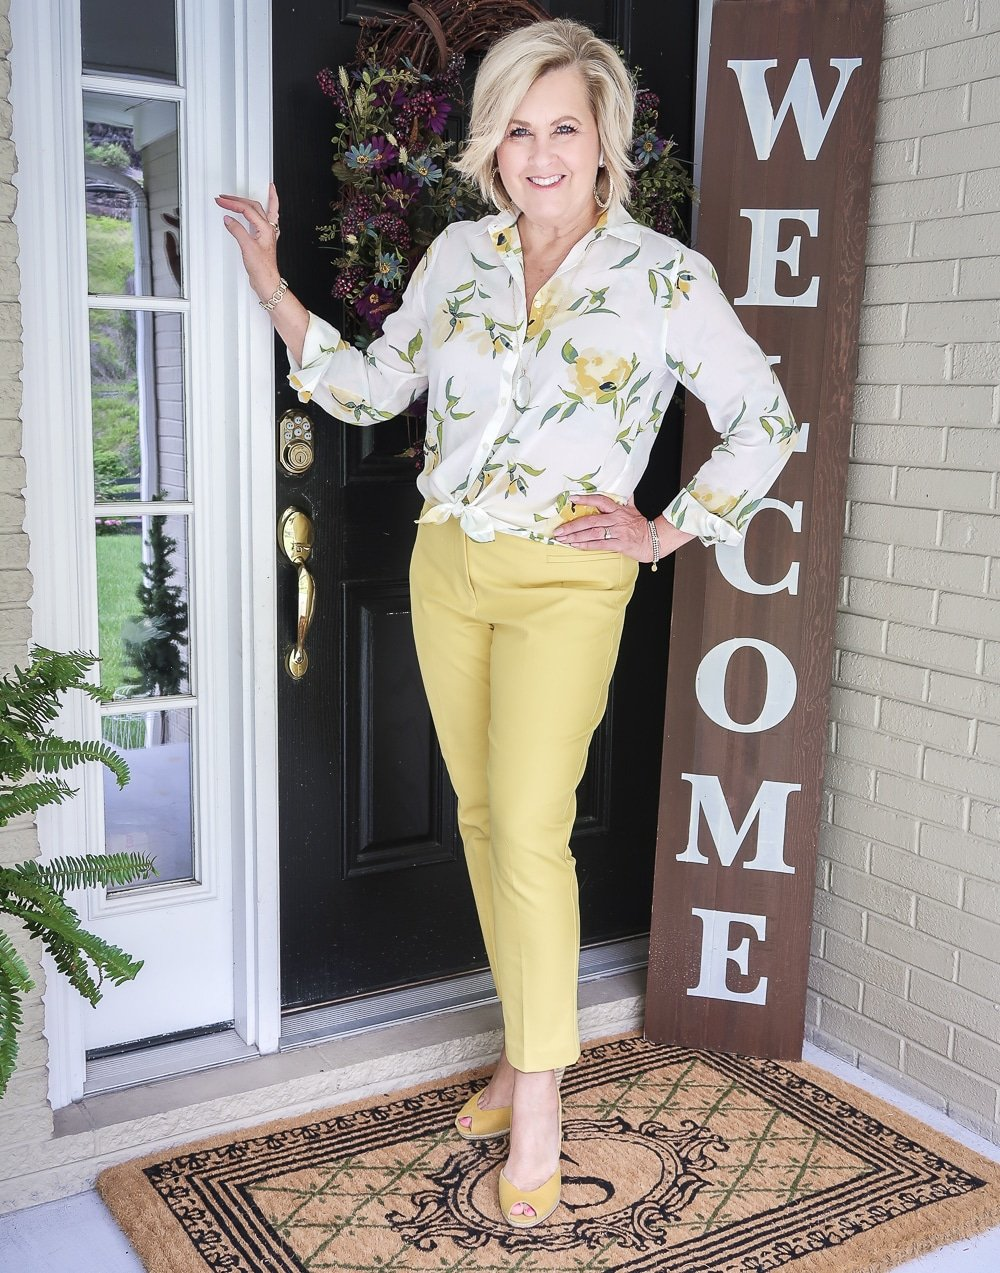 Fashion Blogger 50 Is Not Old is looking sunny in this white and yellow shirt and yellow ankle pants, and a pair of yellow shoes from Michael Kors